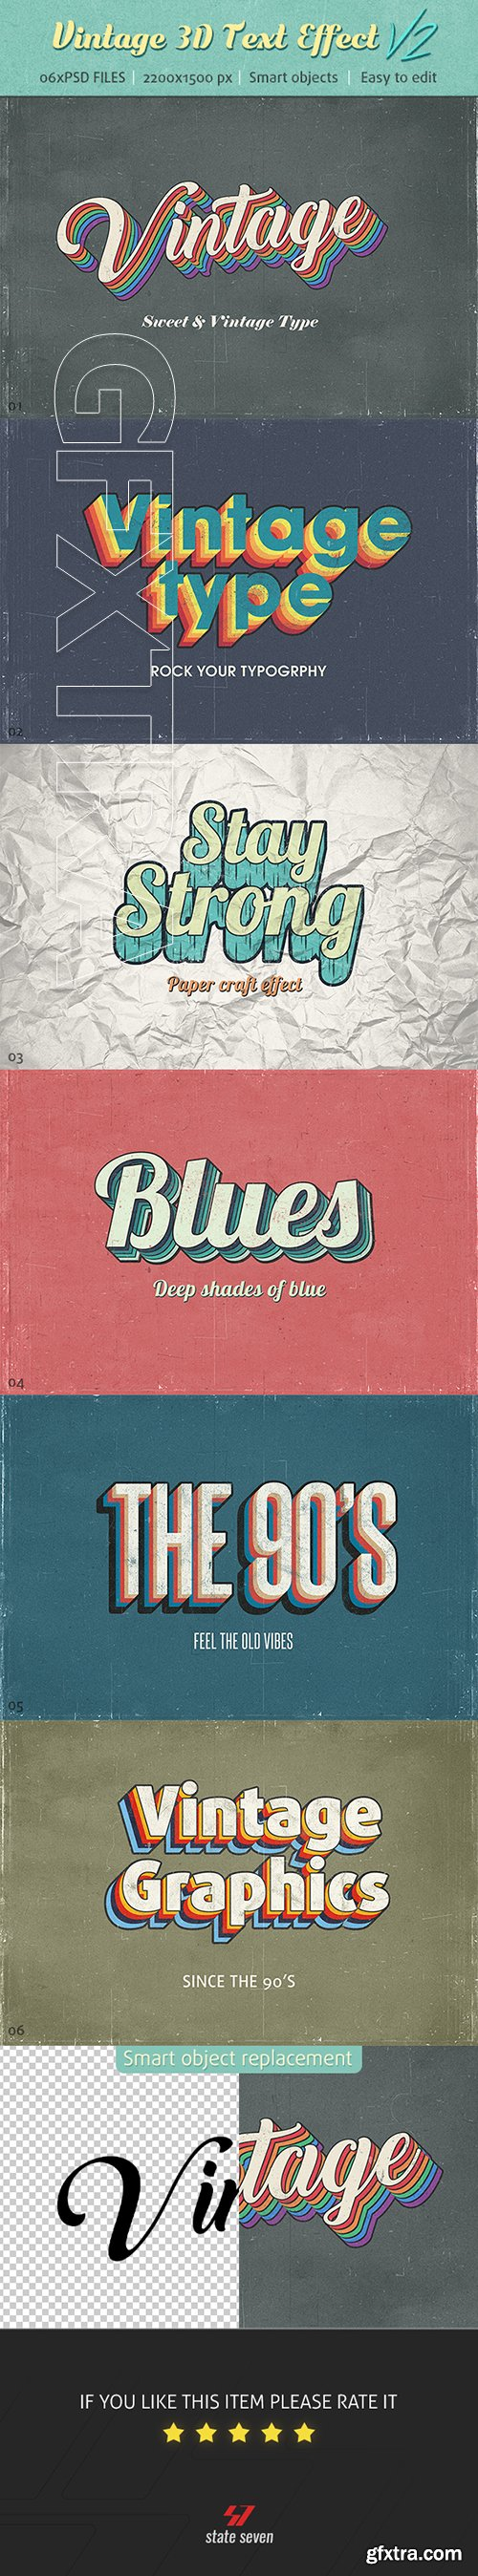 GraphicRiver - Vintage Text Effects V2 22692826